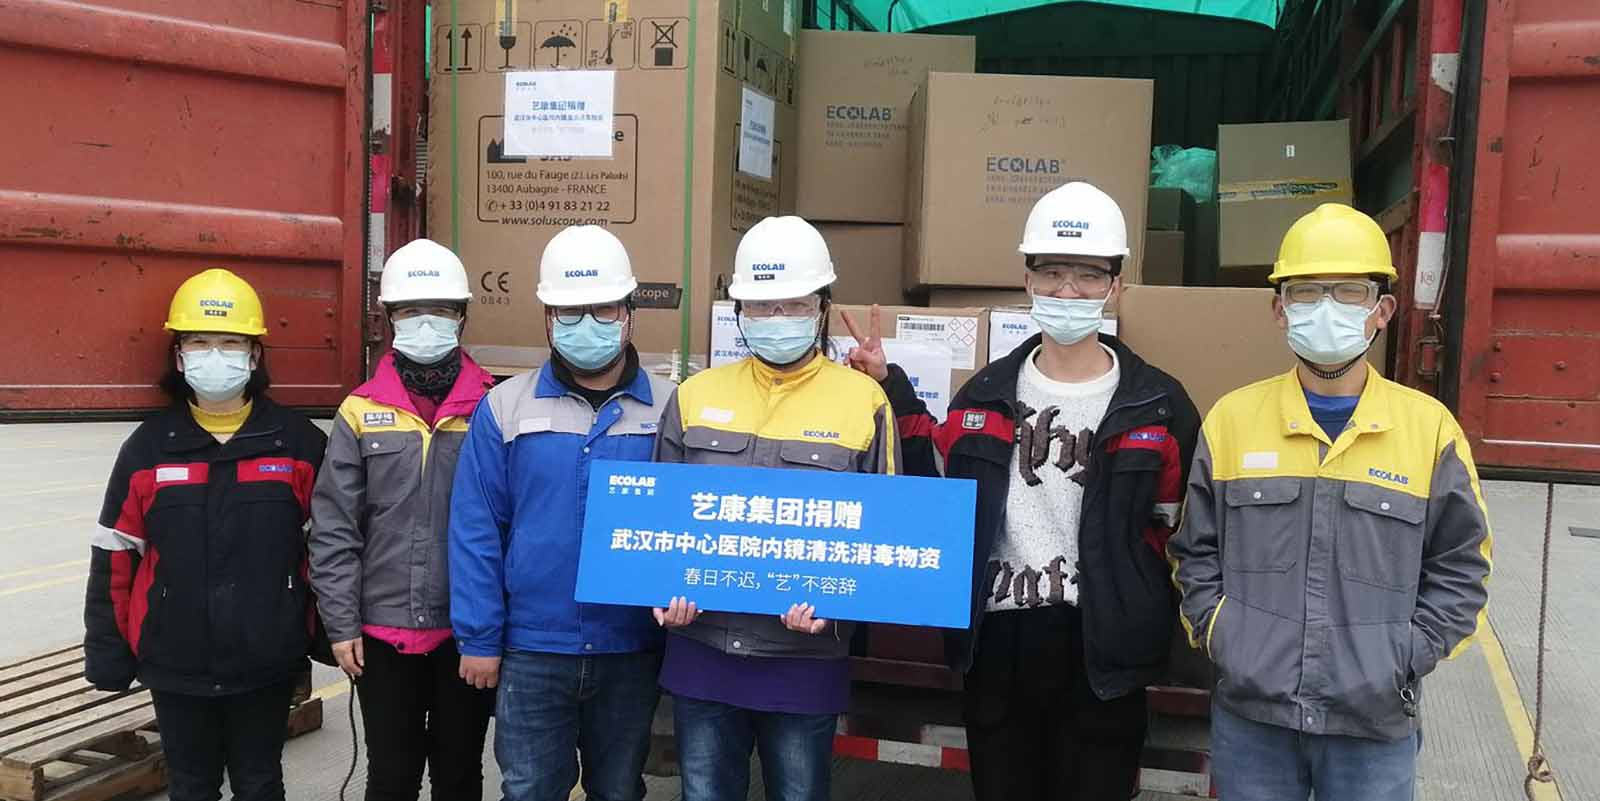 Ecolab donated cleaning and disinfection equipment and materials to the Central Hospital of Wuhan in April 2020.